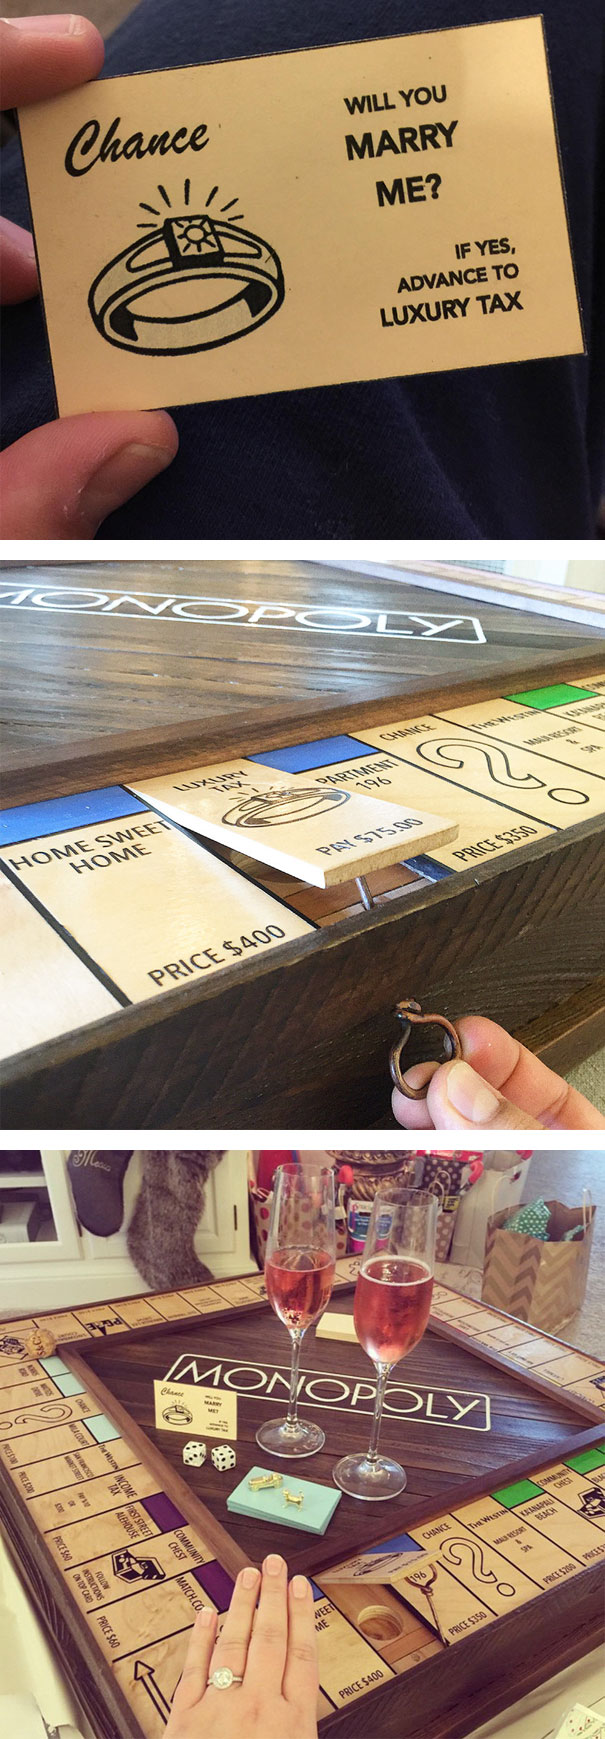 Proposal Using Custom-Made Monopoly Board With Secret Compartment